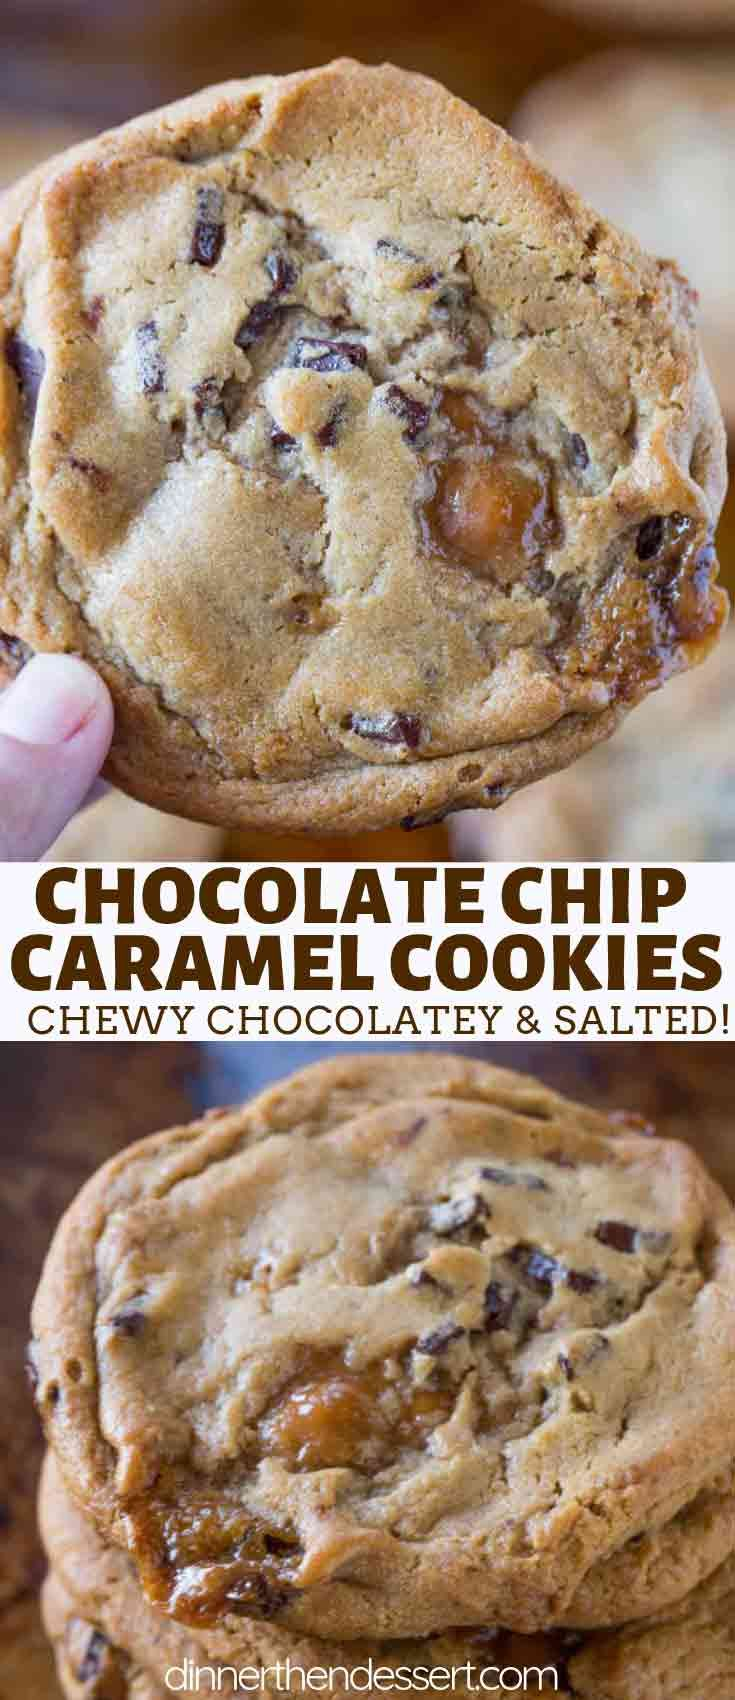 Caramel Chocolate Chip Cookies made with chocolate chunks and chewy caramel bits are the perfect cookie for your Christmas cookie plate! cookies cookie christmas baking dessert chocolate chocol is part of Caramel chocolate chip cookies -